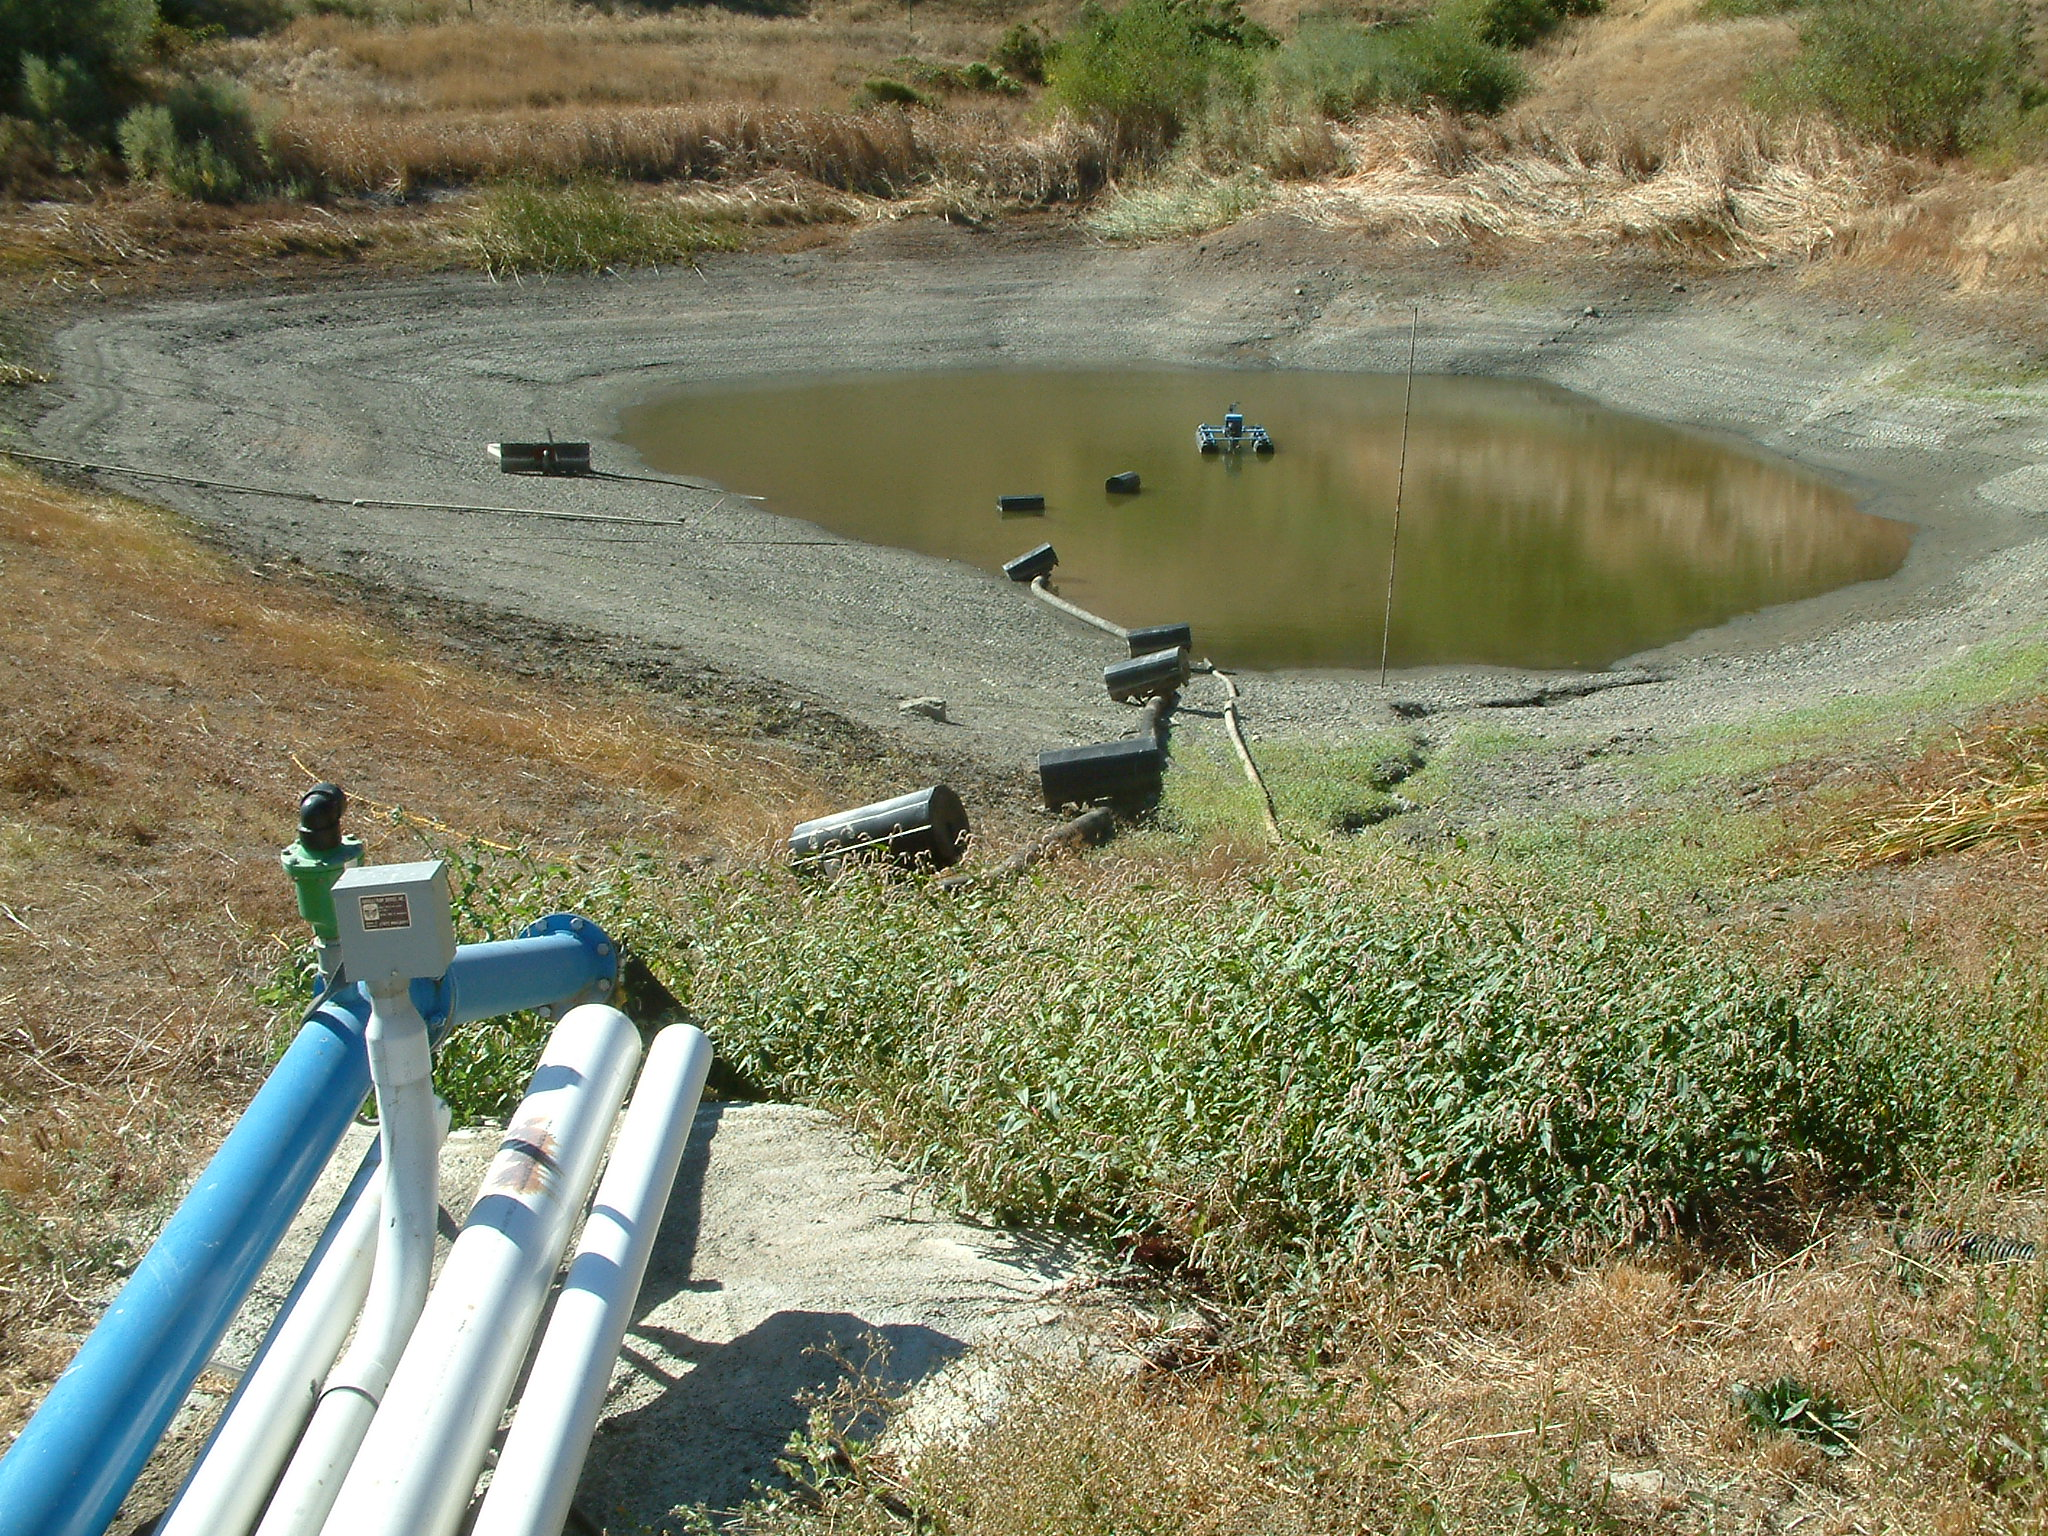 Pond Pumping System for Irrigation and Frost Protection for Vinyards above the Napa Valley